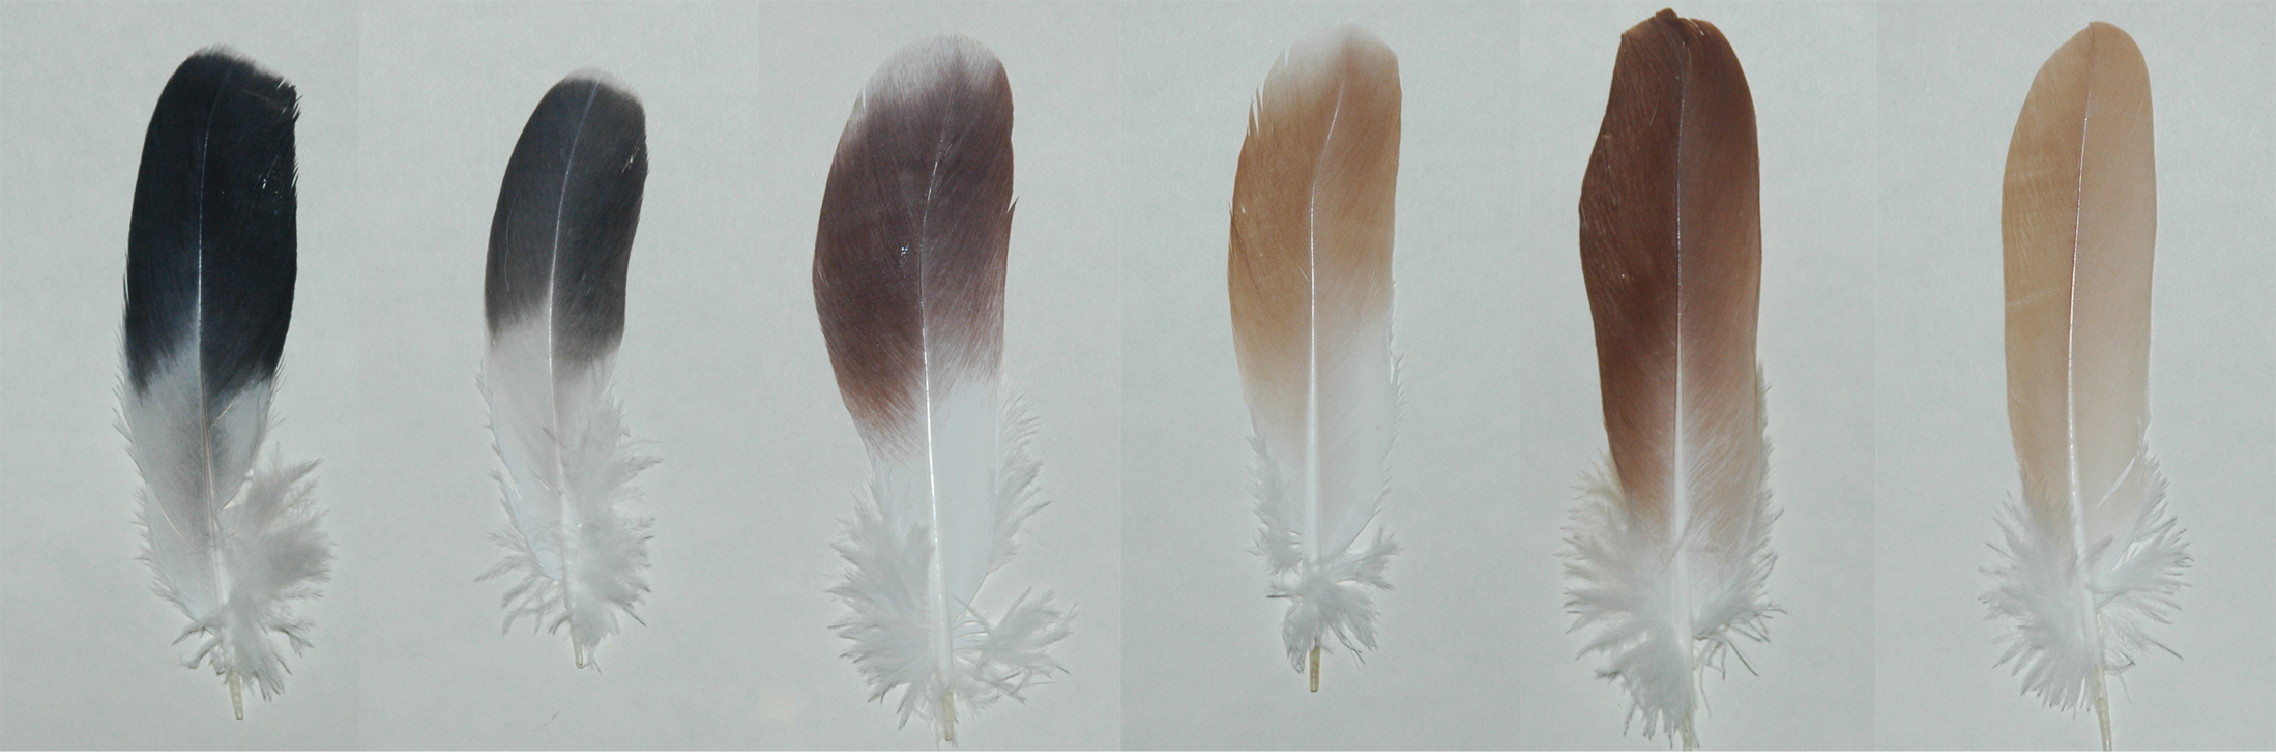 Different bird feathers - photo#38